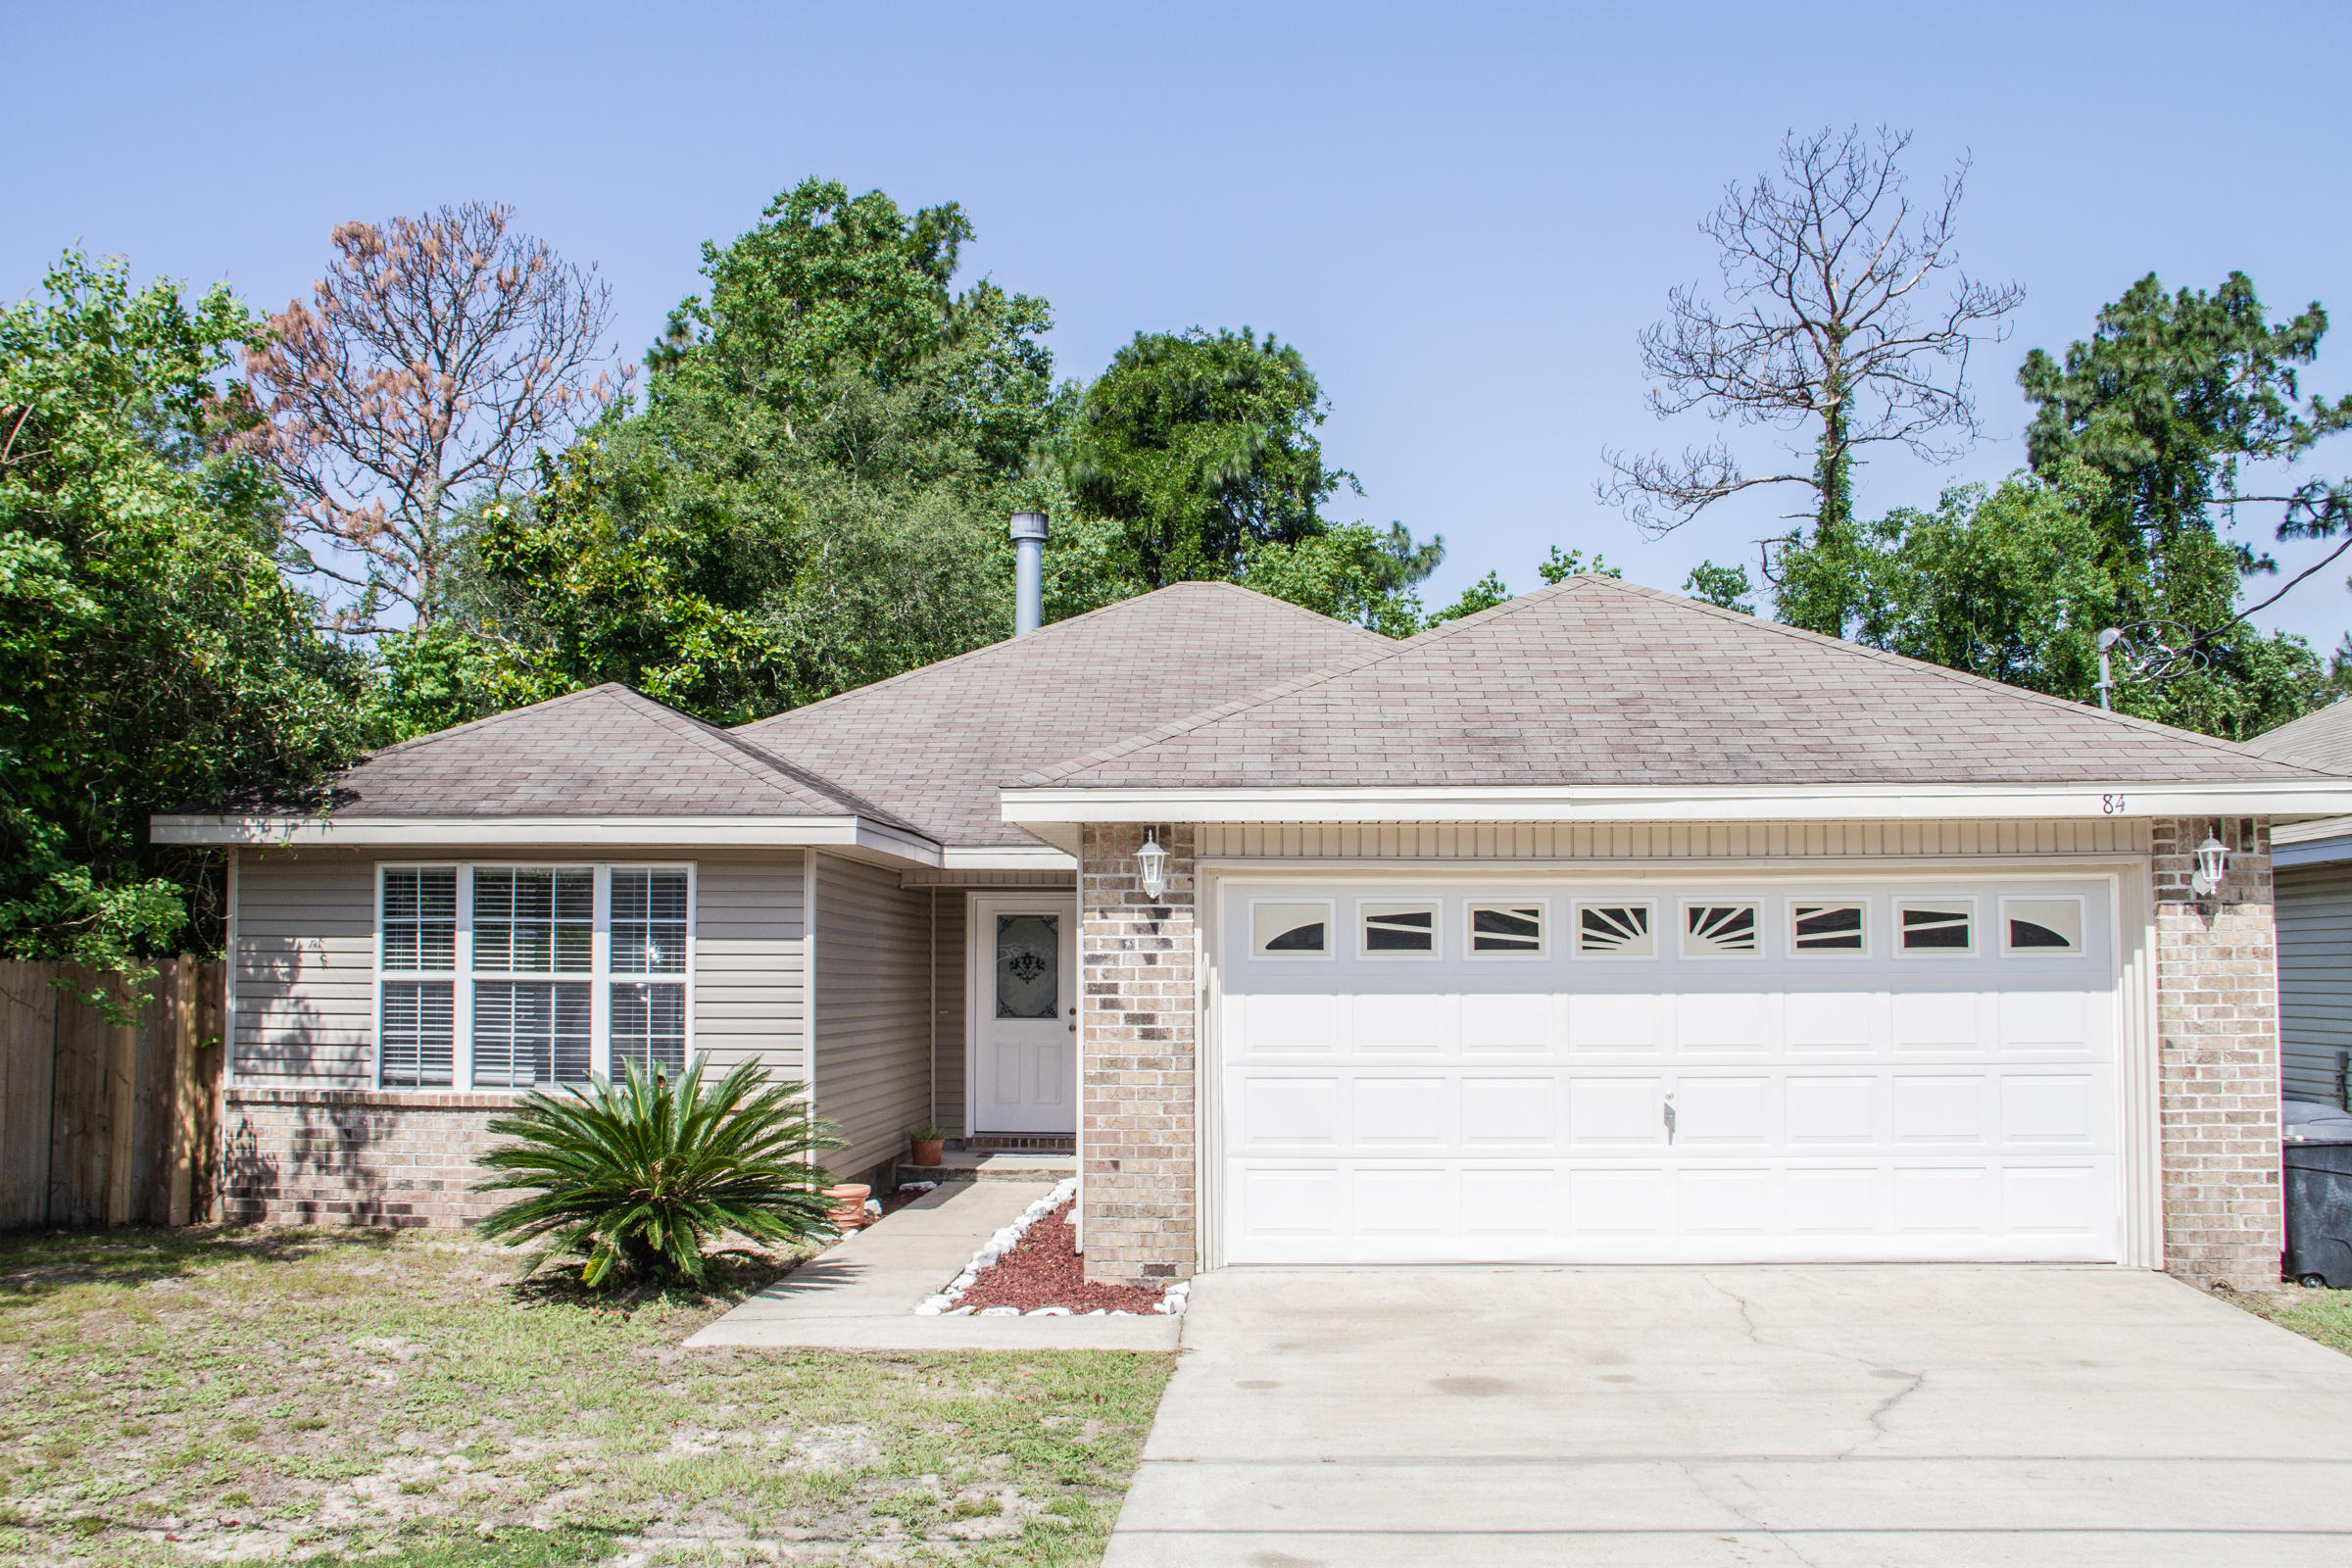 AVAILABLE... July 10, 2020. This 3 bed/ 2 bath home boasts an open floor plan.. Minutes to Destin &